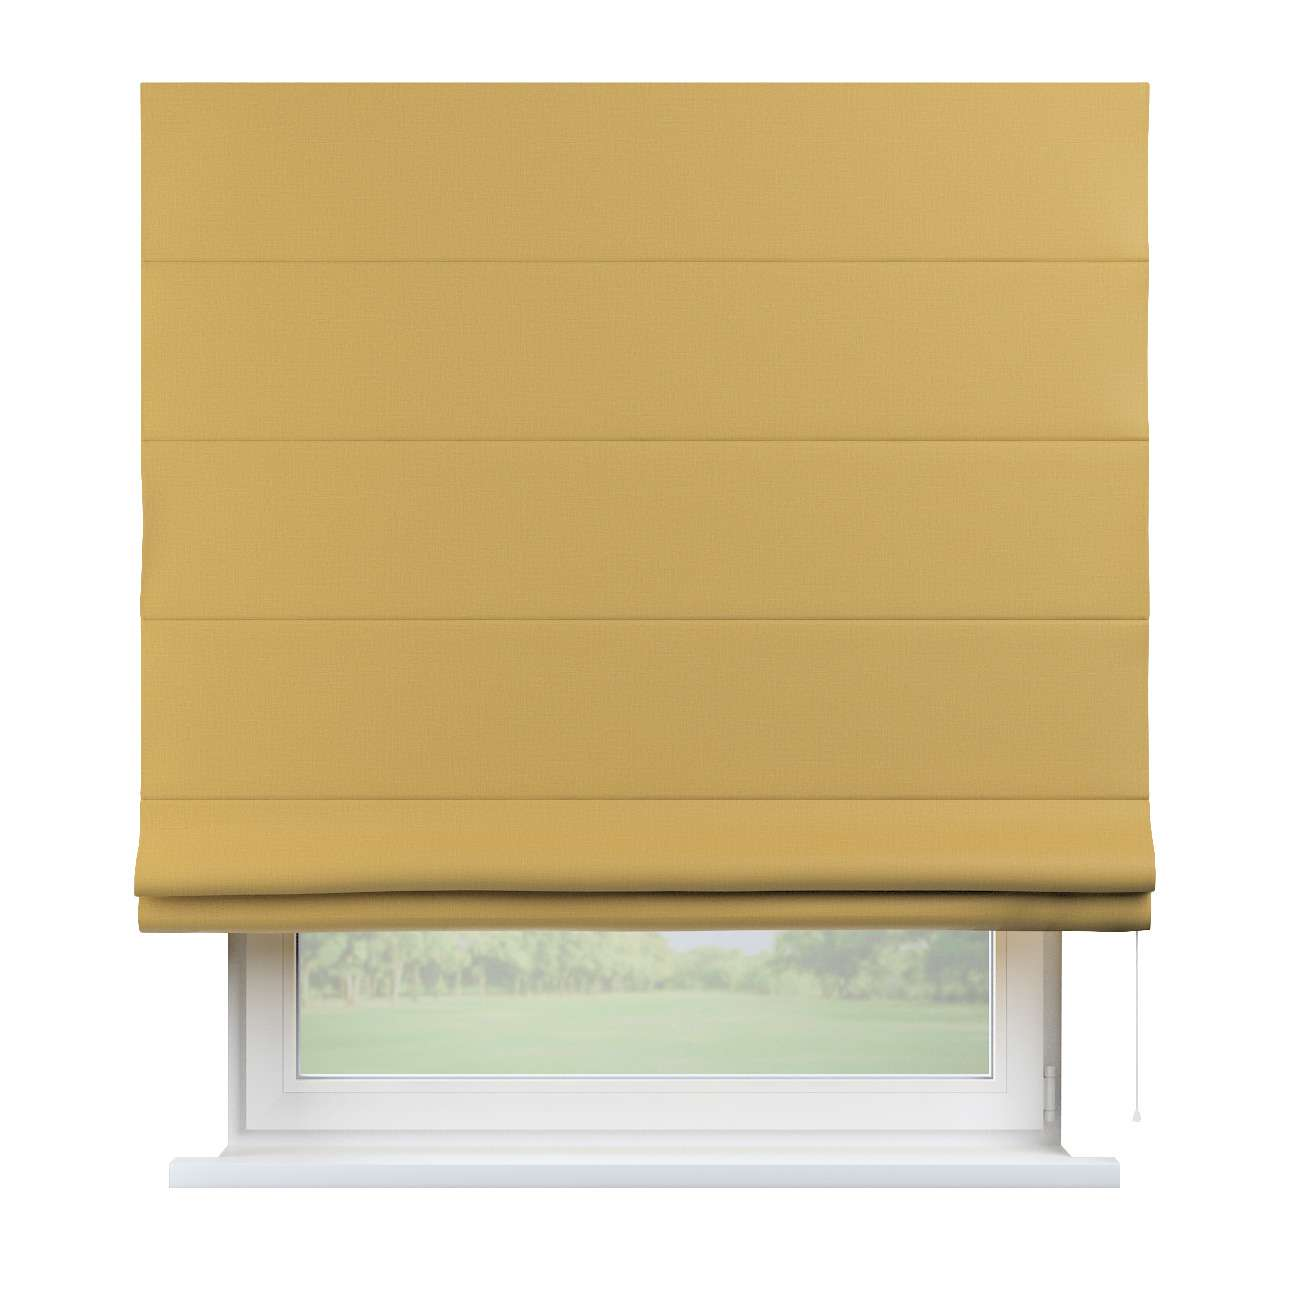 Blackout roman blind in collection Blackout, fabric: 269-68